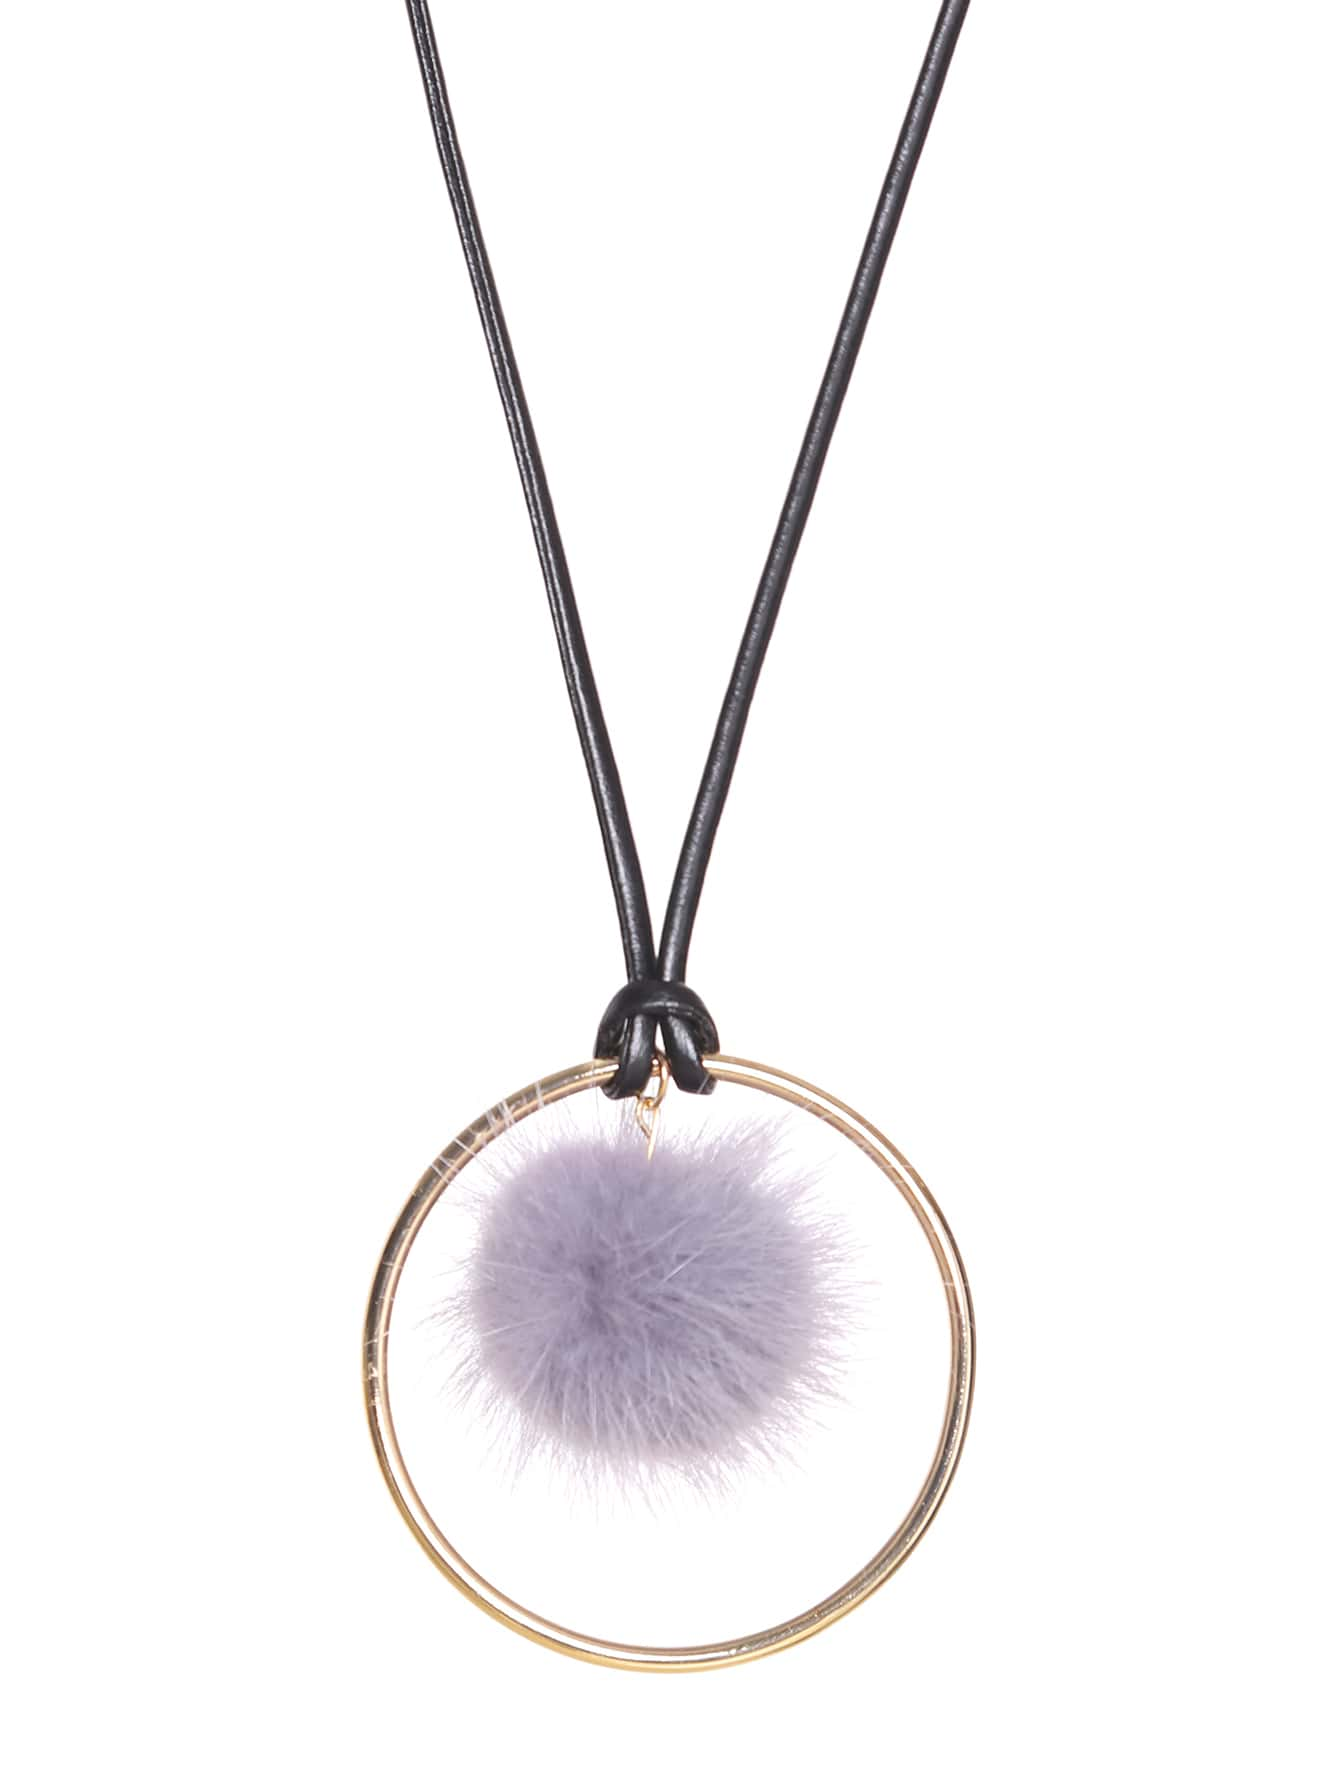 Grey Pom Pom Gold Ring Long Pendant NecklaceGrey Pom Pom Gold Ring Long Pendant Necklace<br><br>color: Grey<br>size: None